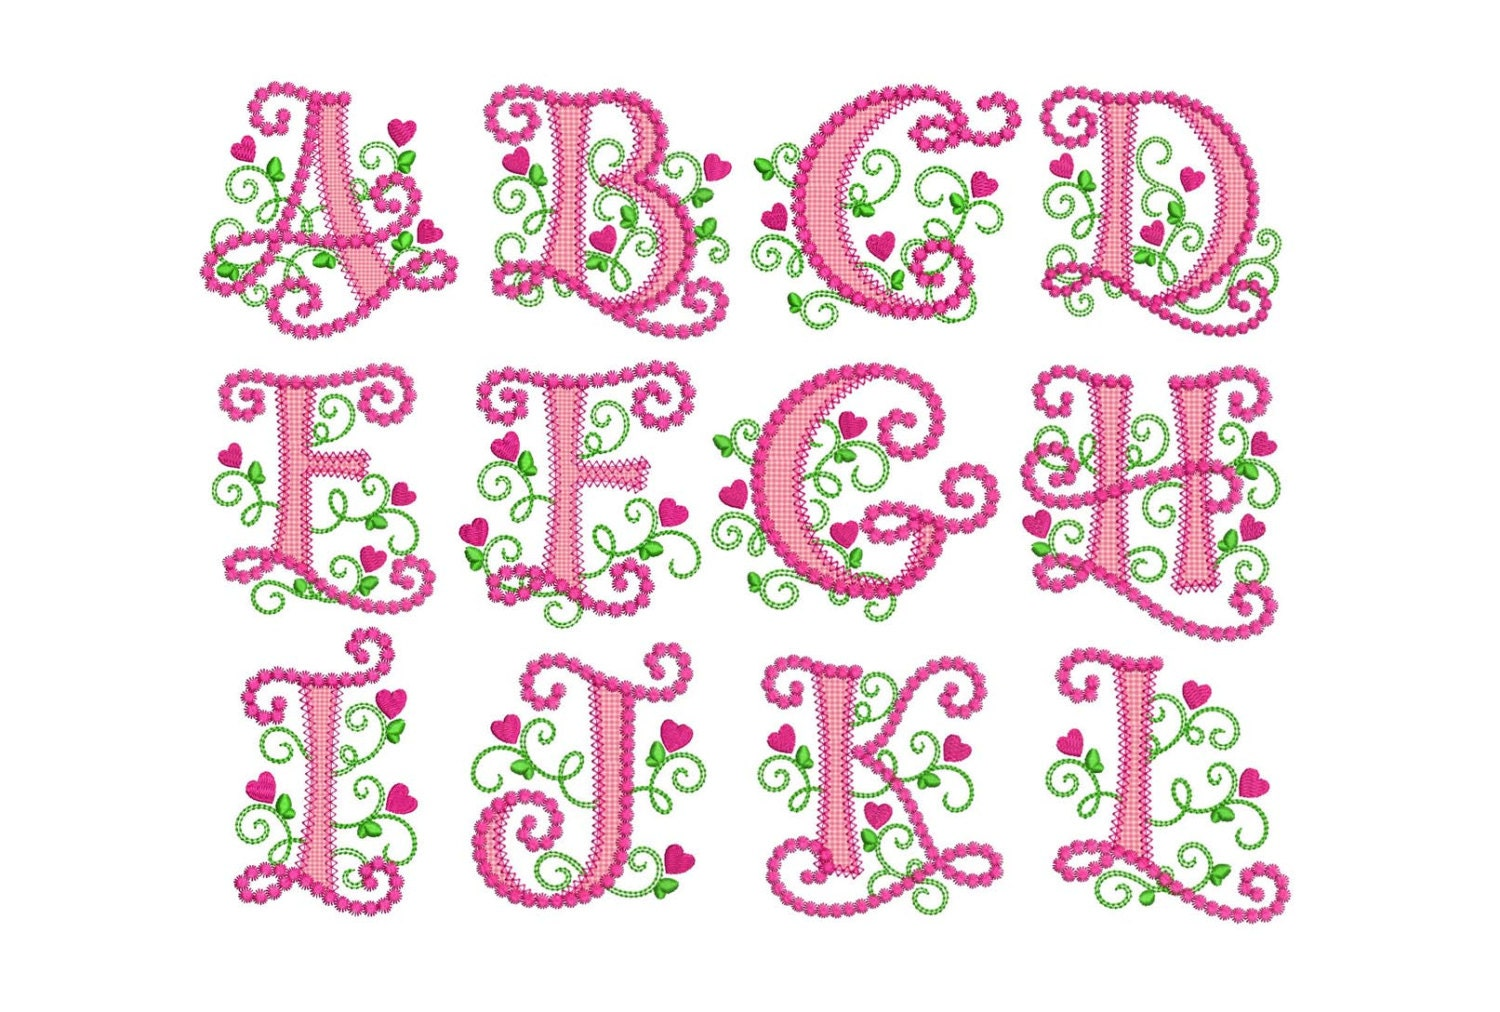 Coupon codes cute alphabet applique machine embroidery design zoom altavistaventures Images